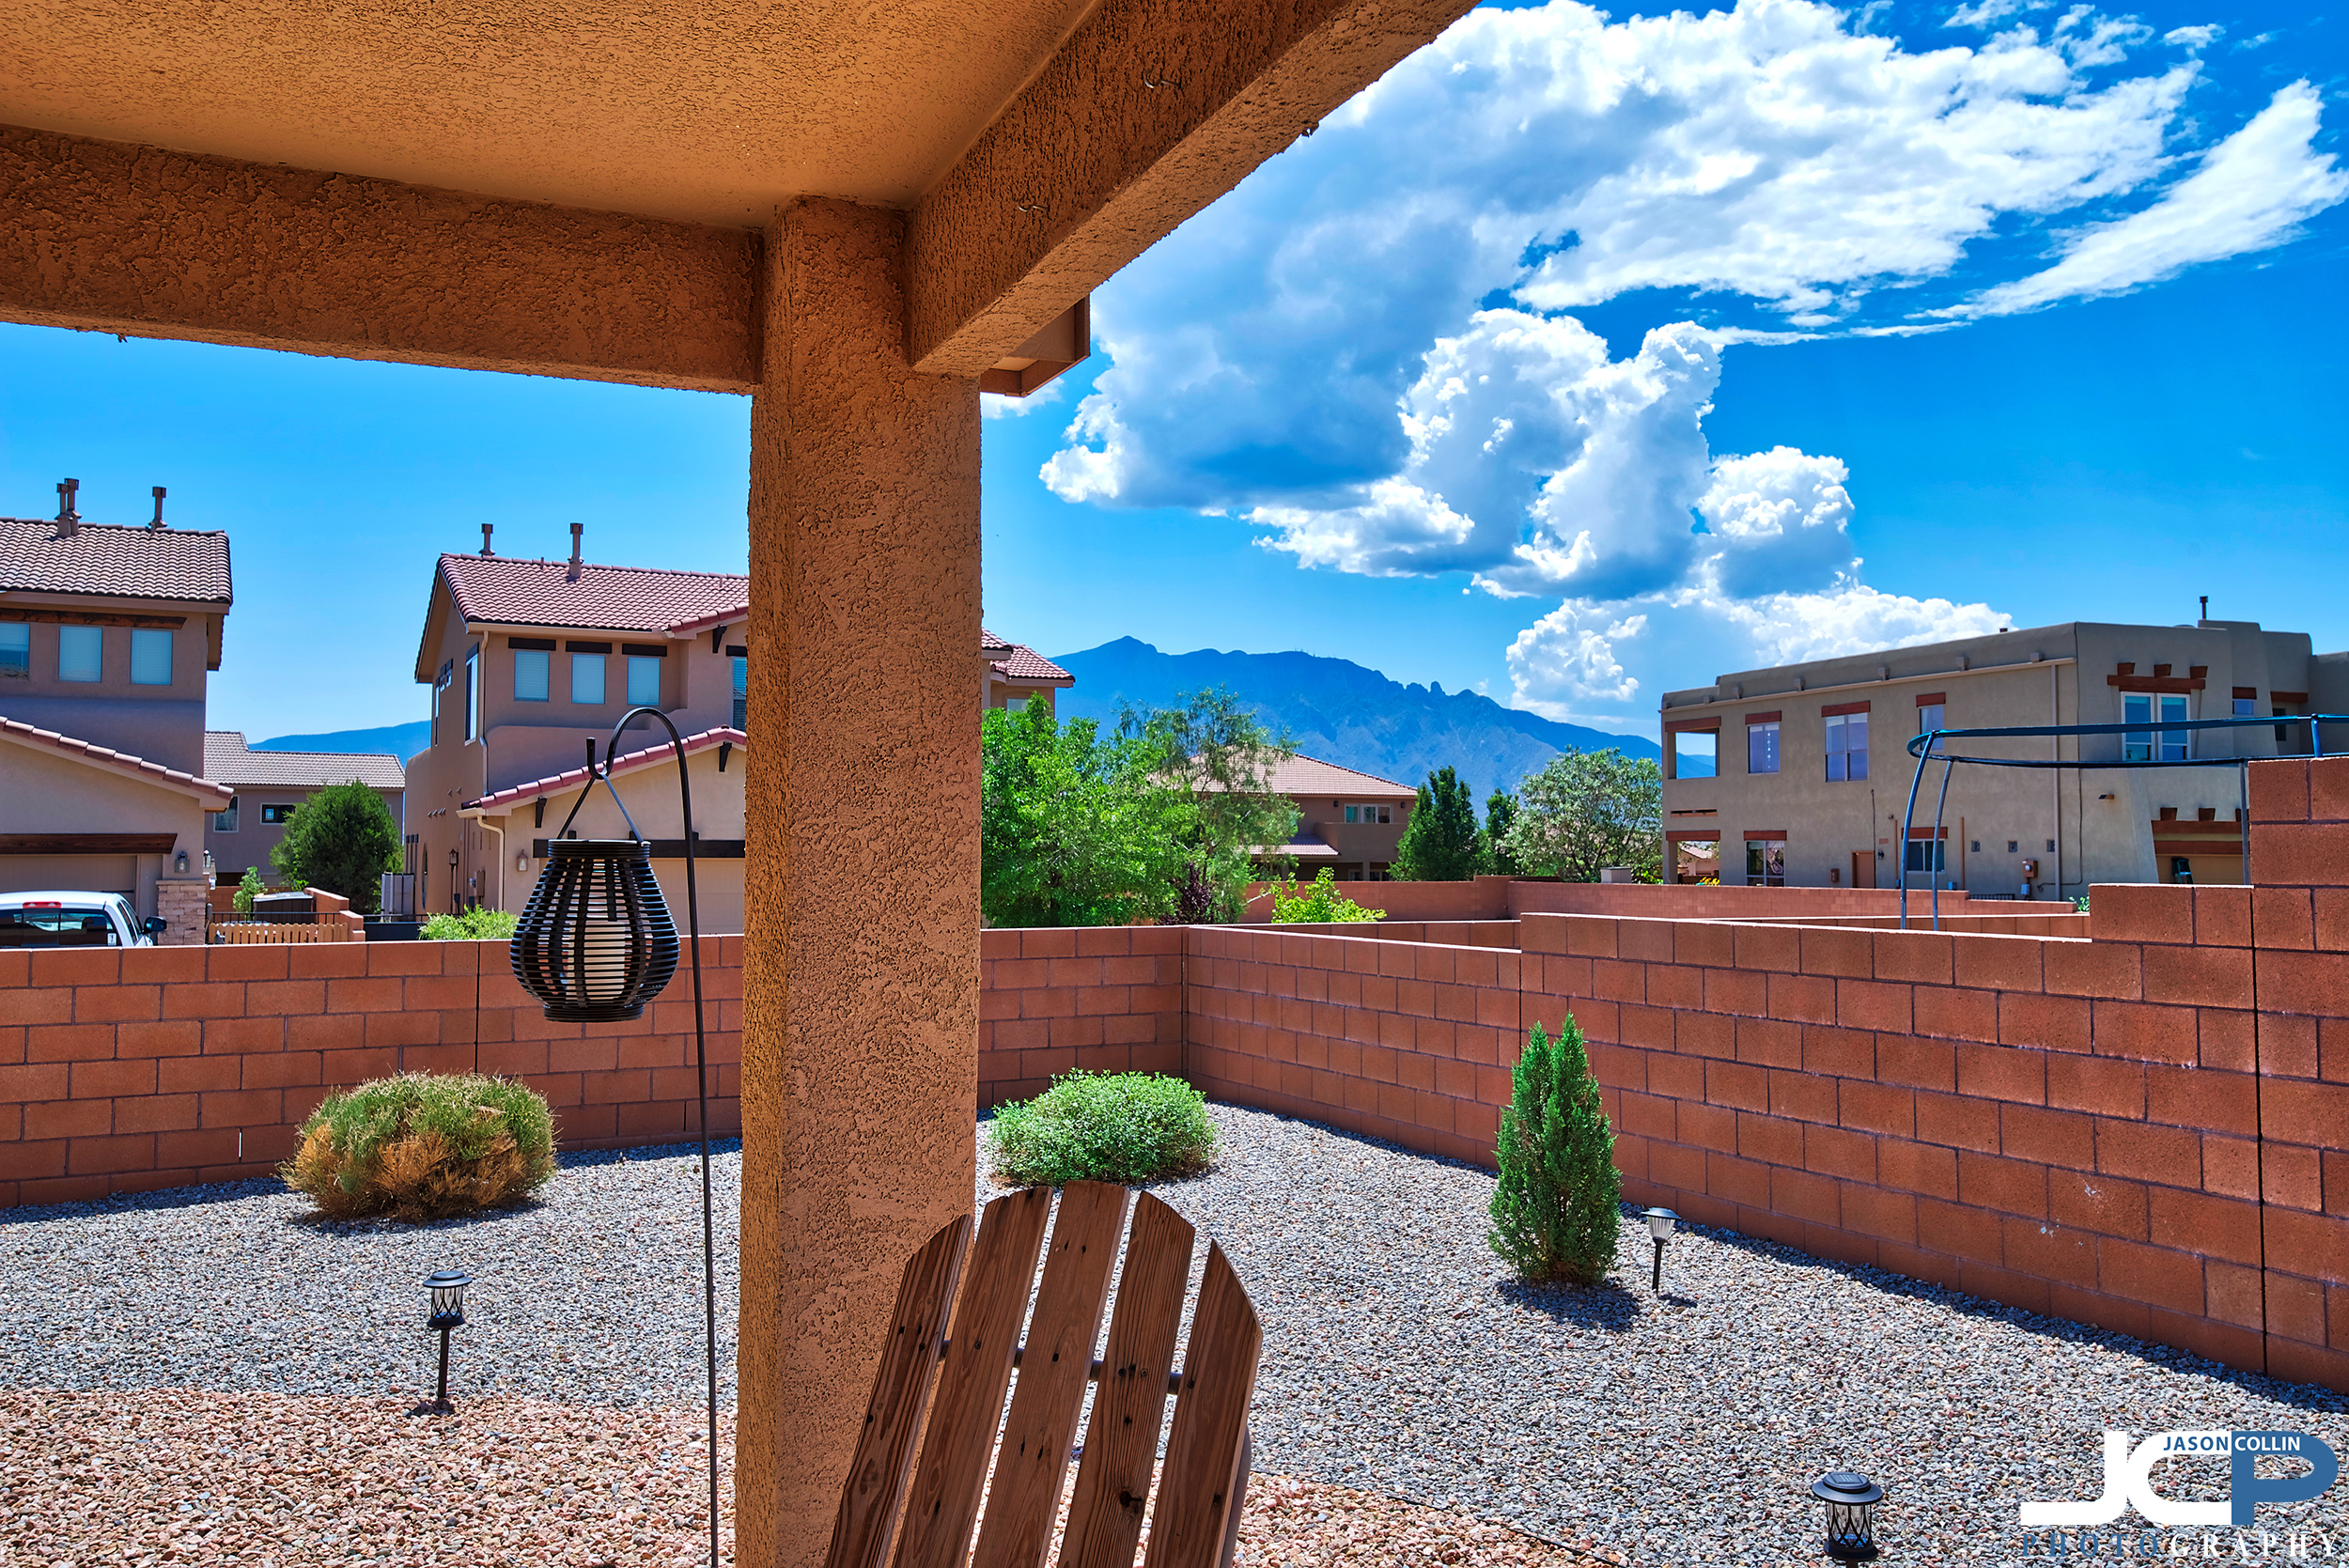 The view from a residential real estate listing I photographed in Bernalillo, New Mexico - Nikon D750 with Tamron 15-30mm f/2.8 SP lens tripod mounted 5-bracket HDR processed in Aurora HDR 2018